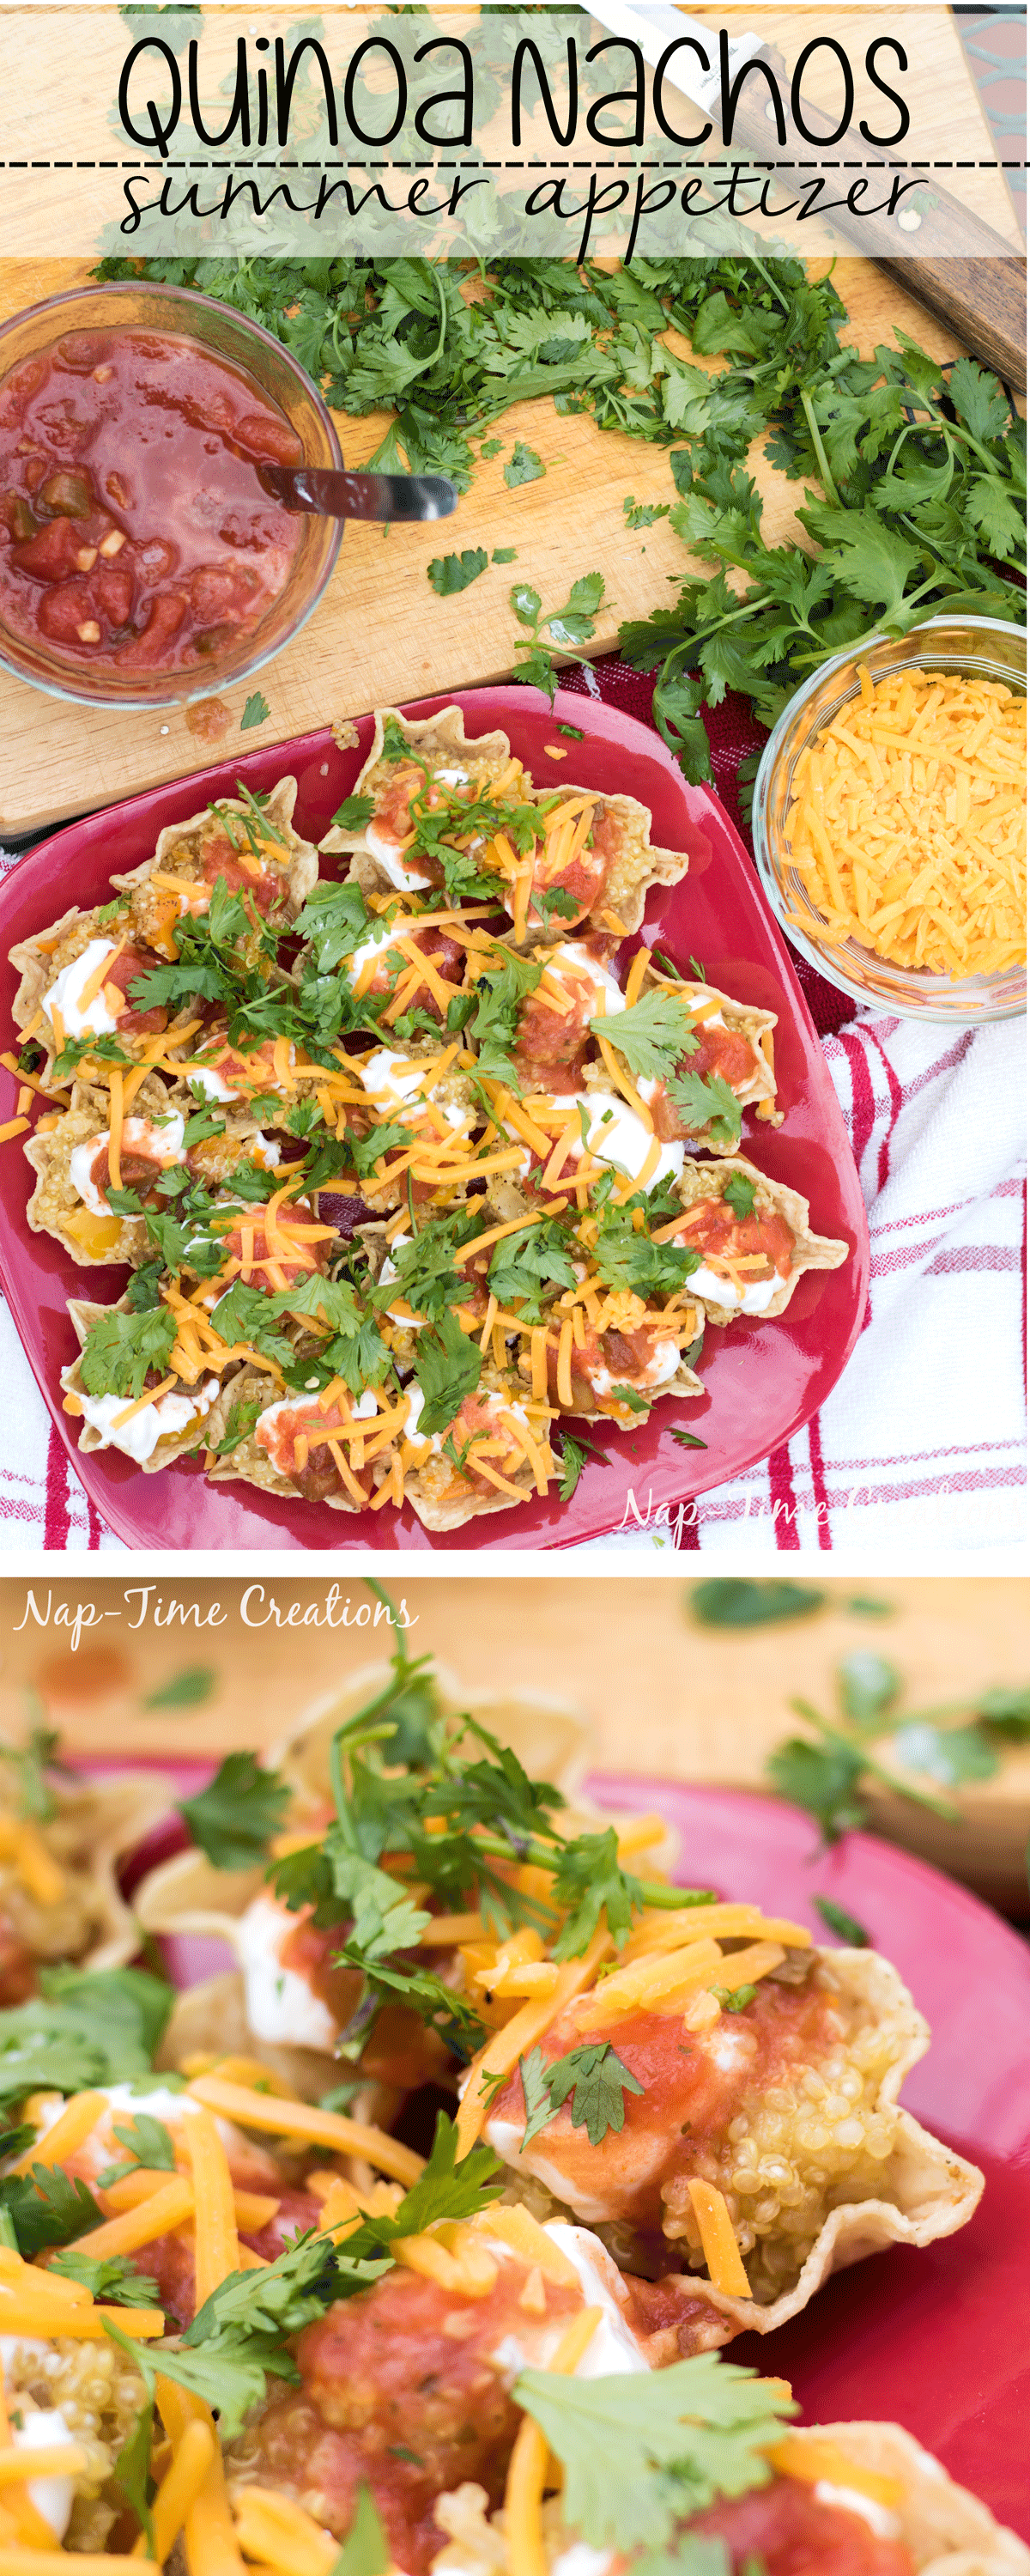 Quinoa-Nachos-Appetizer-from-Nap-Time-Creations-#BlockPartyHero-#CollectiveBias-AD